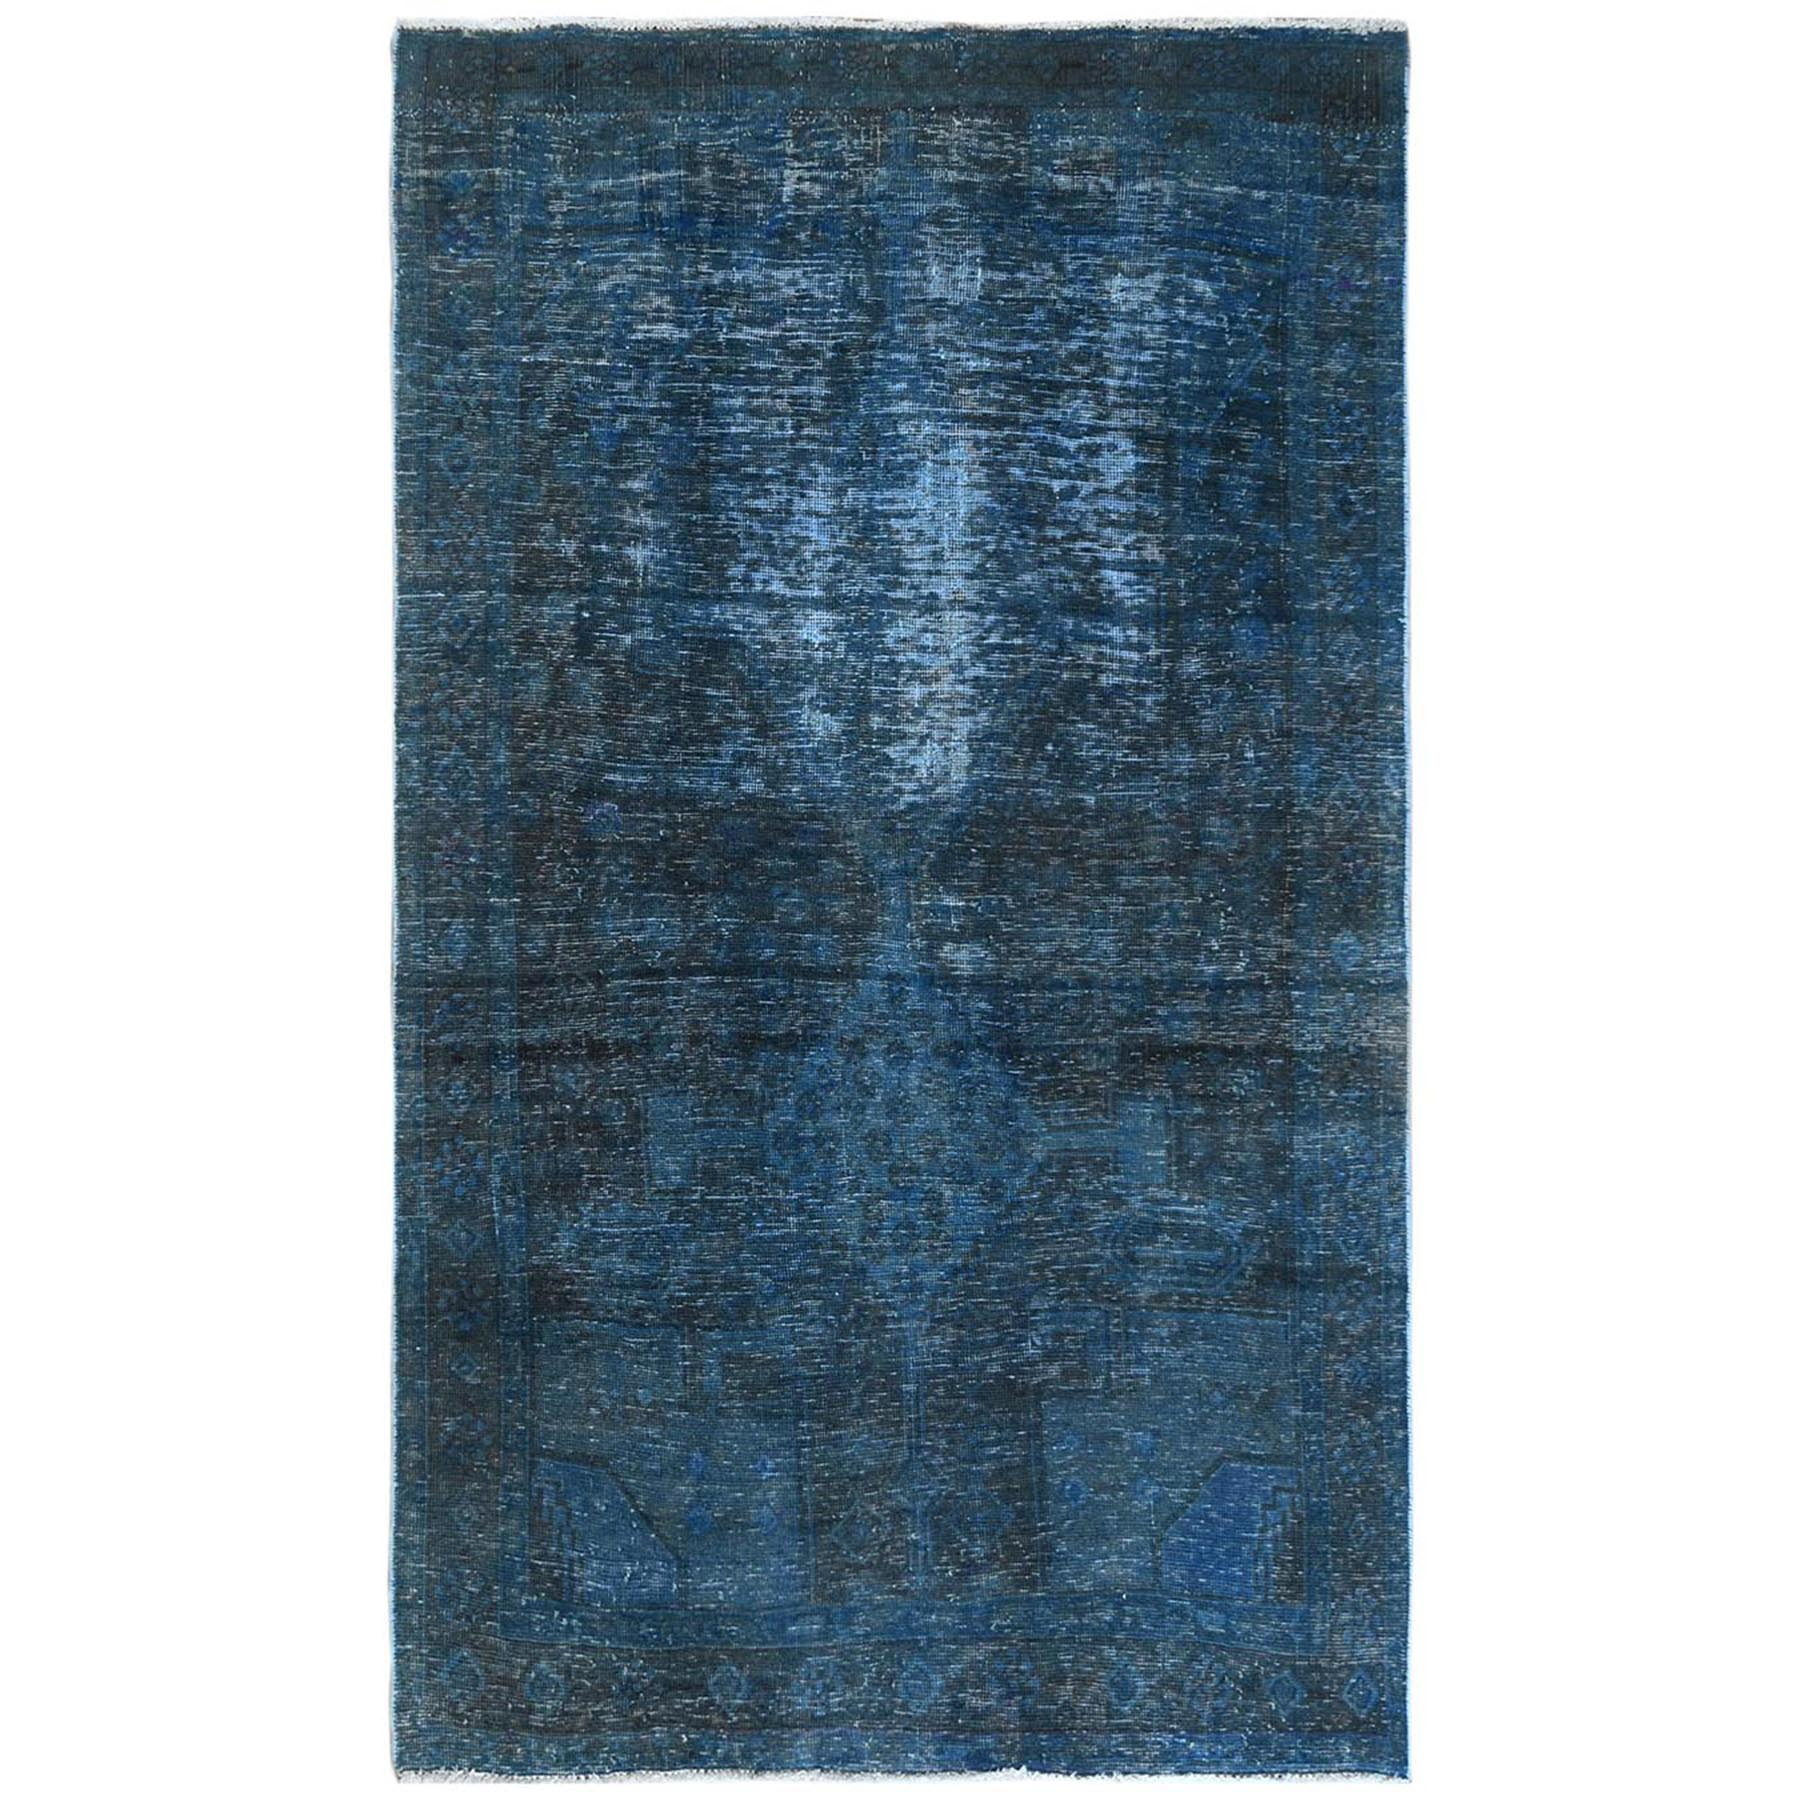 Fetneh Collection And Vintage Overdyed Collection Hand Knotted Teal Rug No: 1122136